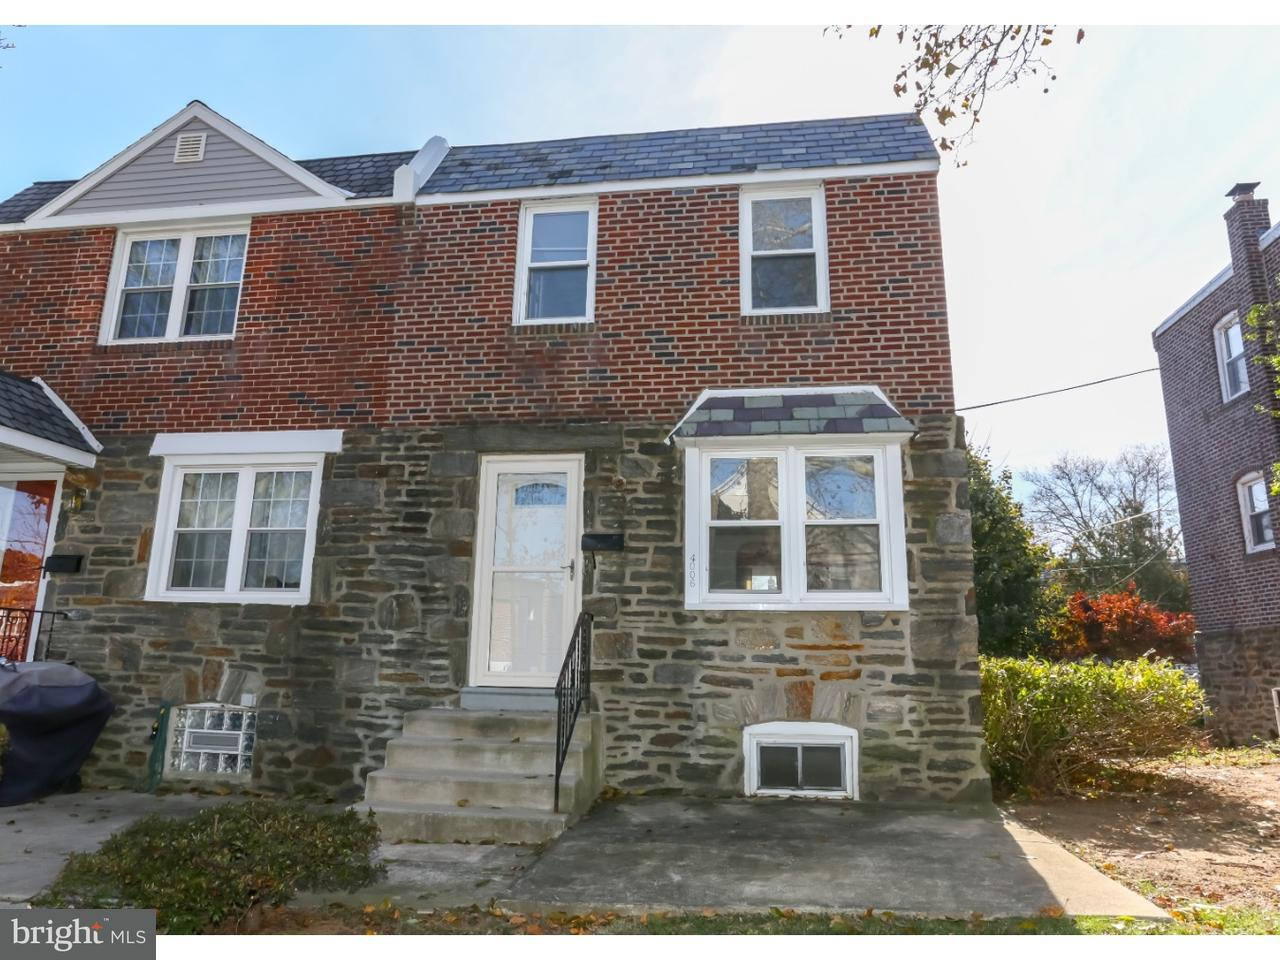 4006  Marshall Road Drexel Hill, PA 19026